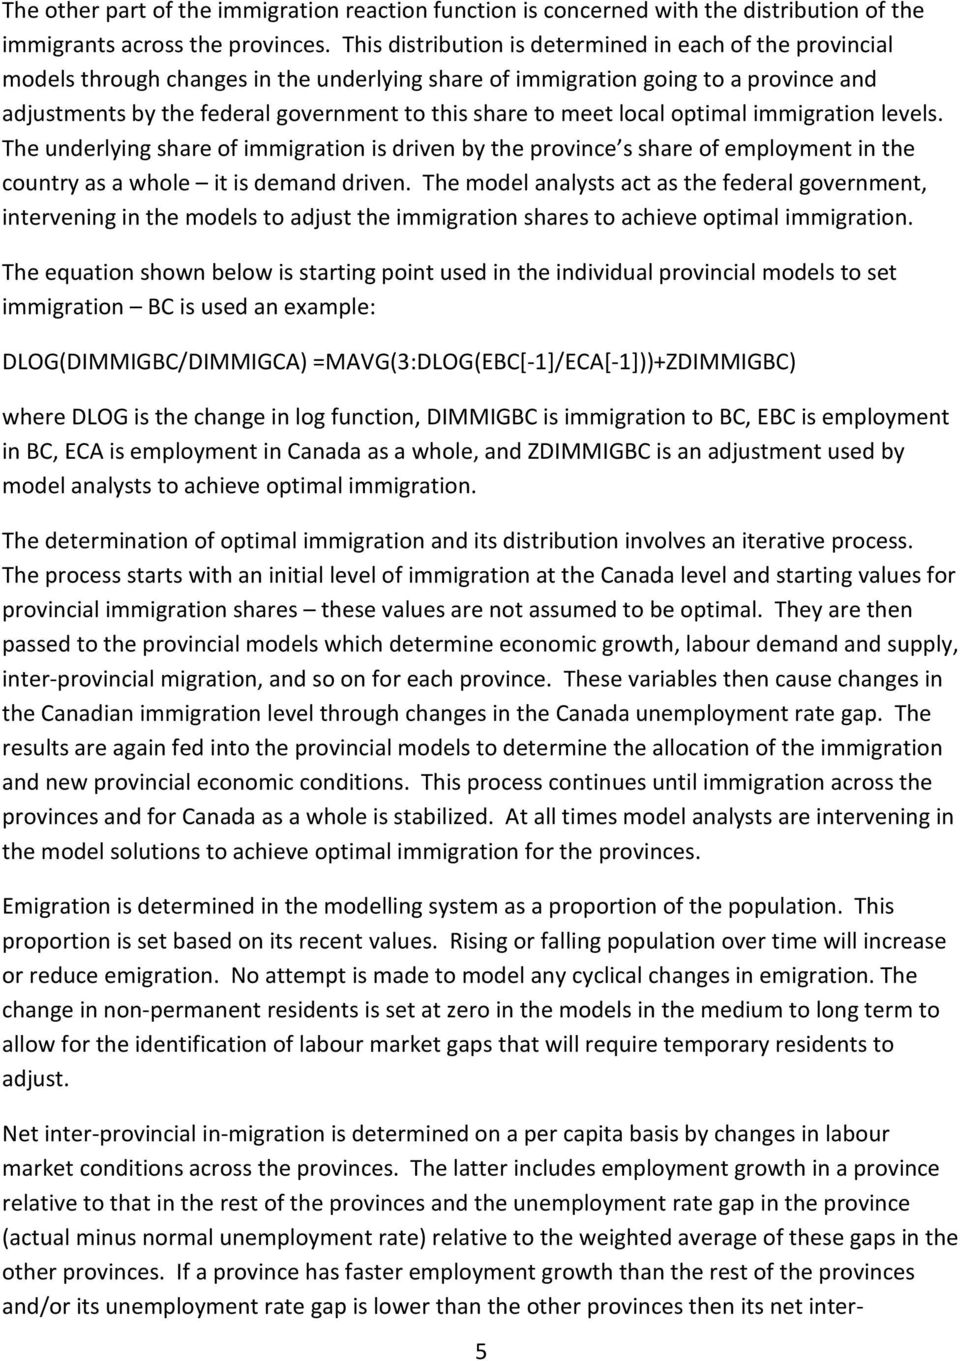 meet local optimal immigration levels. The underlying share of immigration is driven by the province s share of employment in the country as a whole it is demand driven.